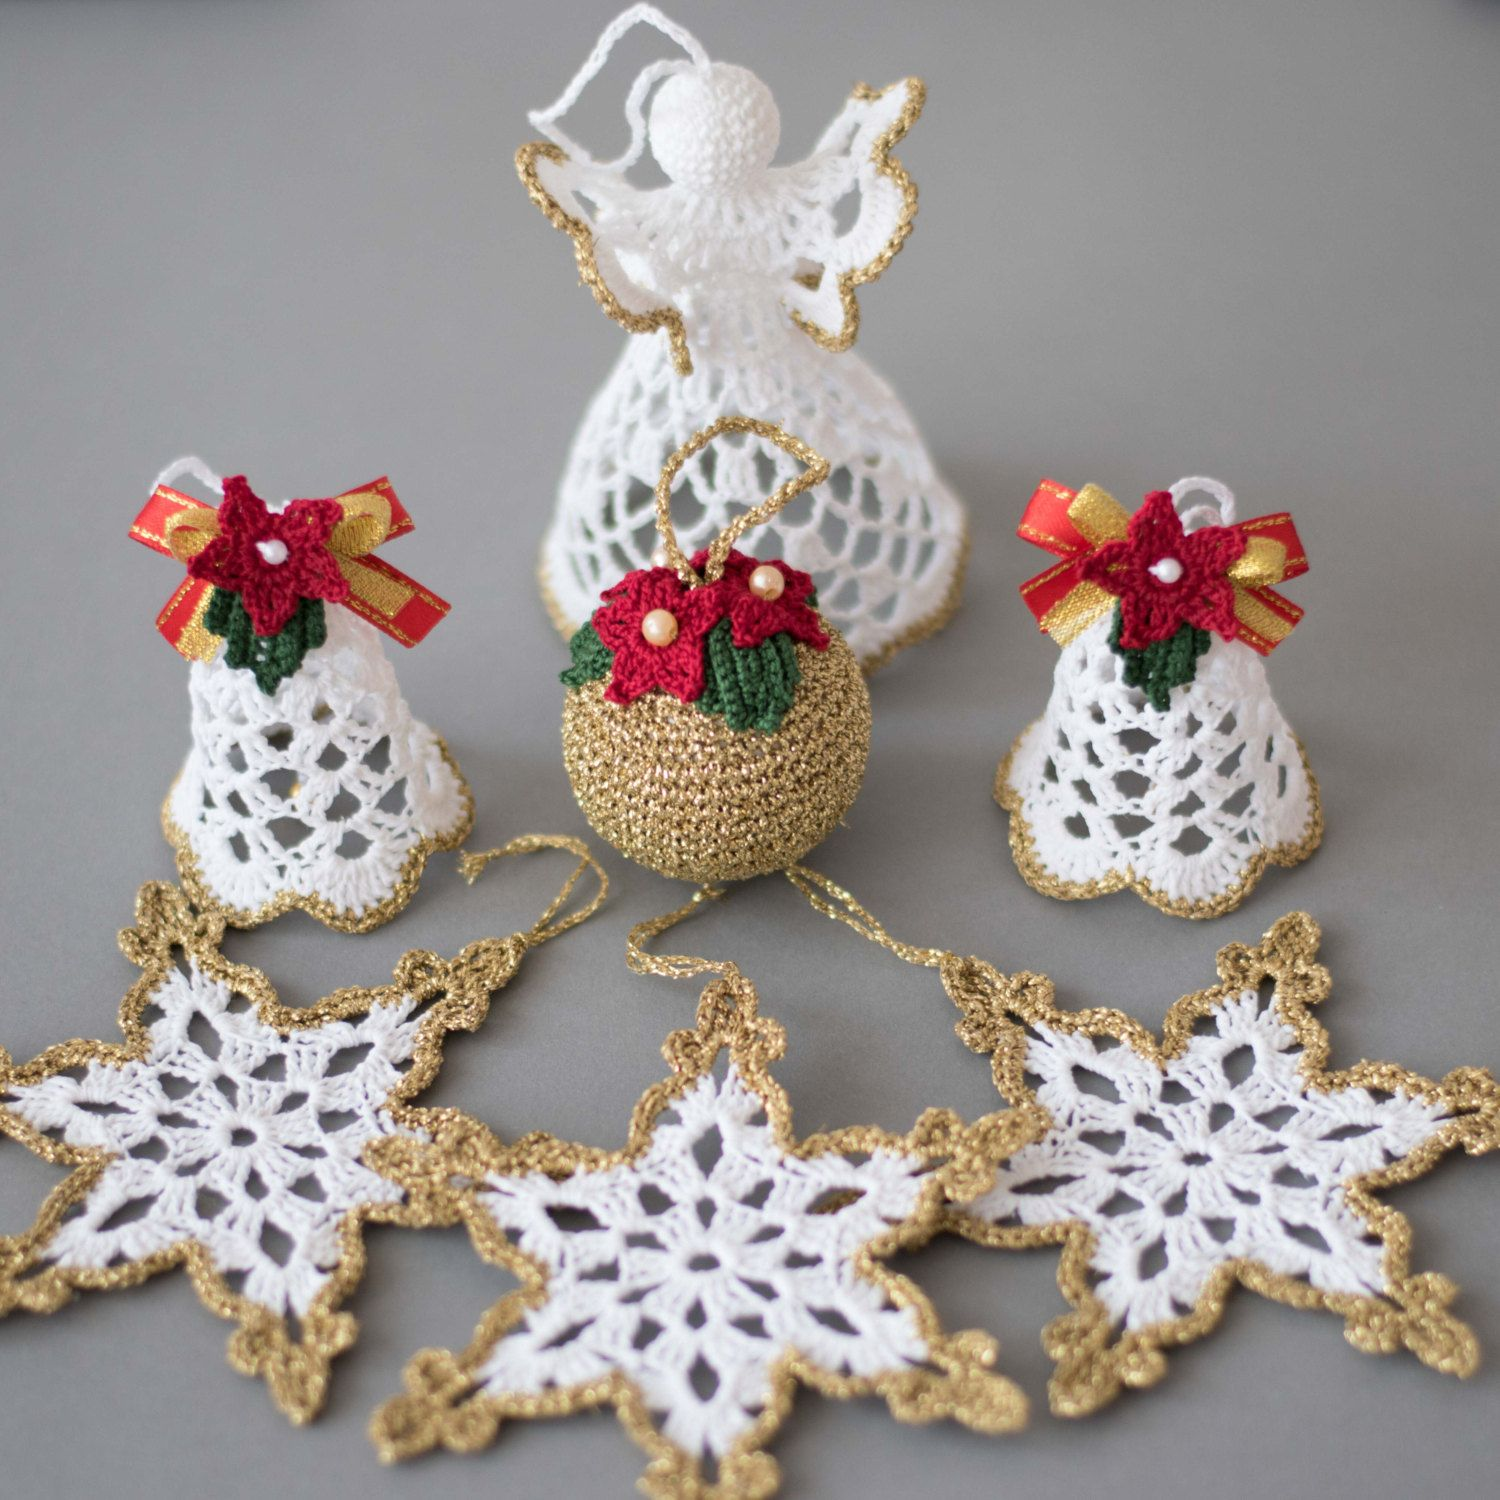 christmas ornaments crochet set of 6 white gold ornaments. Black Bedroom Furniture Sets. Home Design Ideas